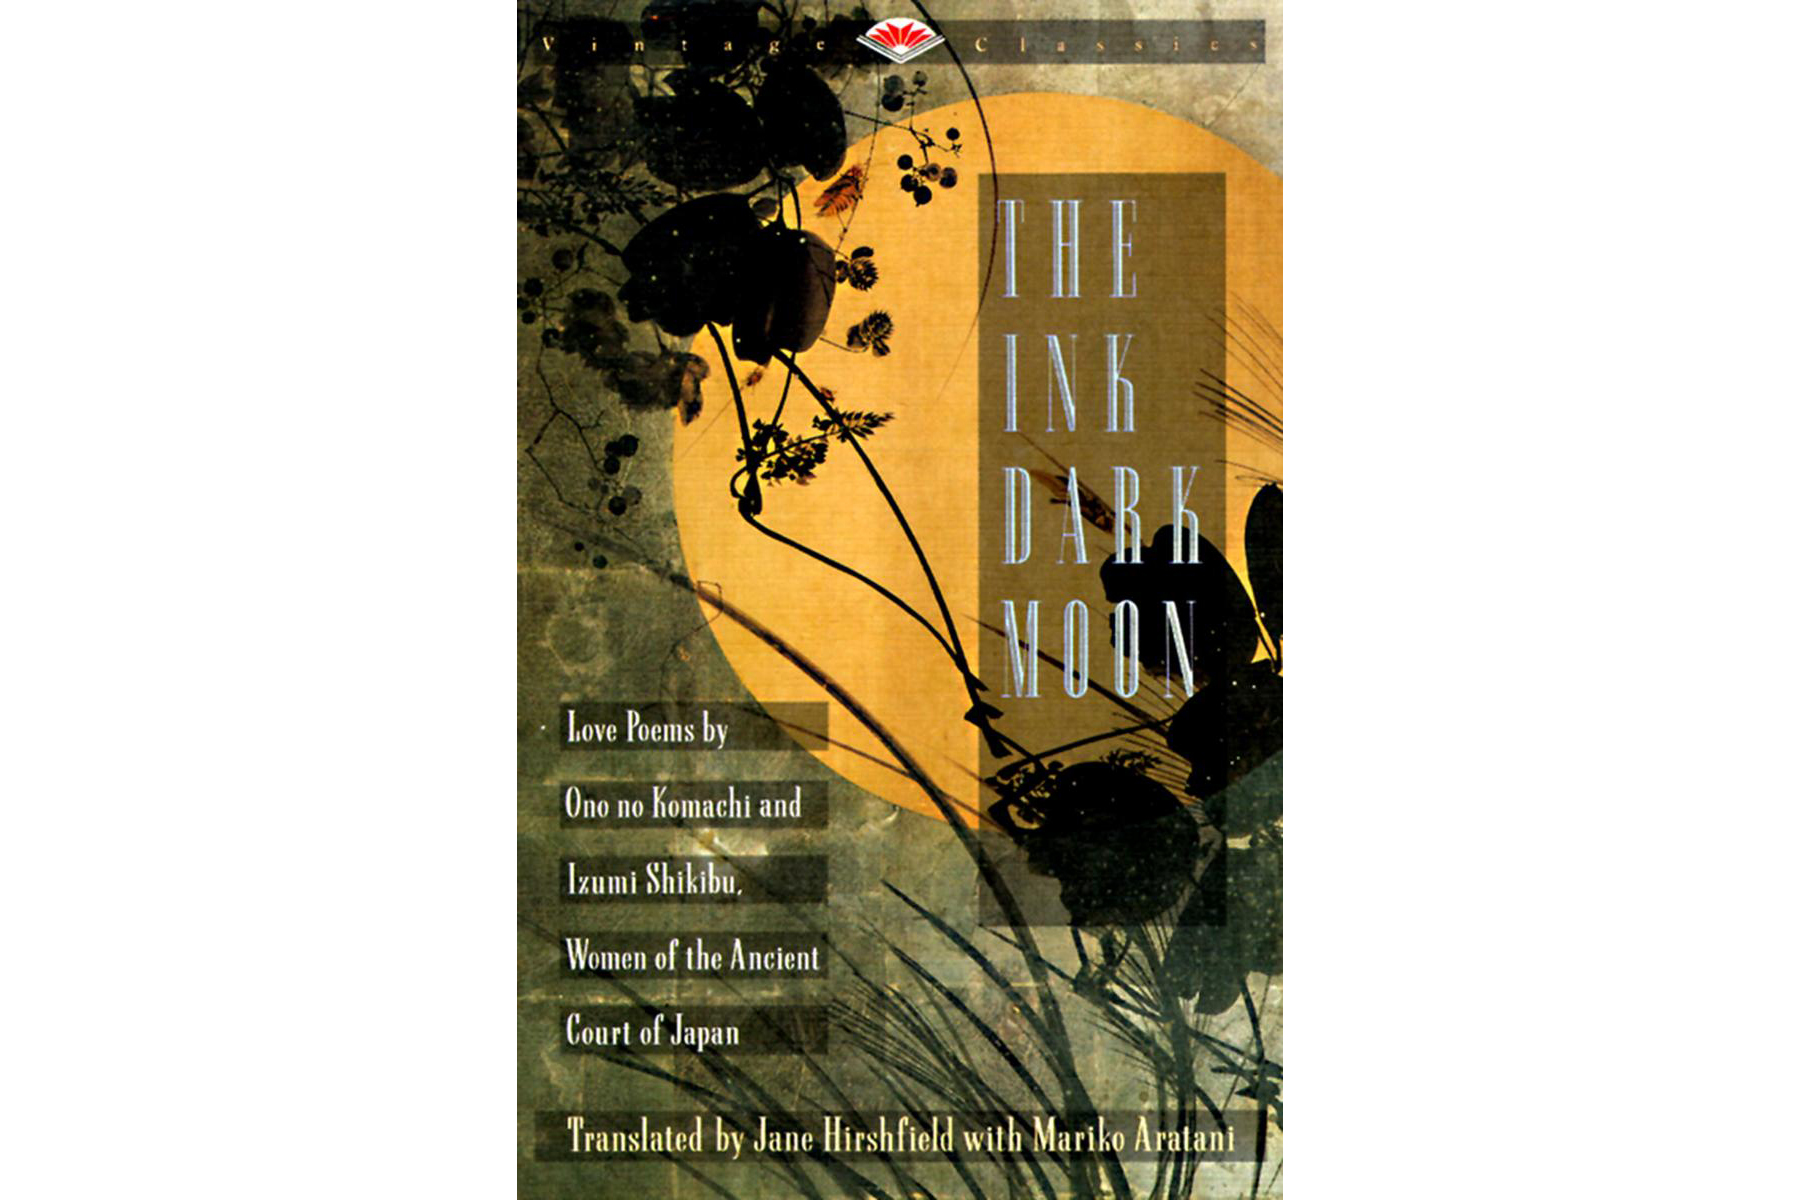 The Ink Dark Moon: Love Poems by Onono Komachi and Izumi Shikibu, Women of the Ancient Court of Japan, edited by Jane Hirshfield Cover